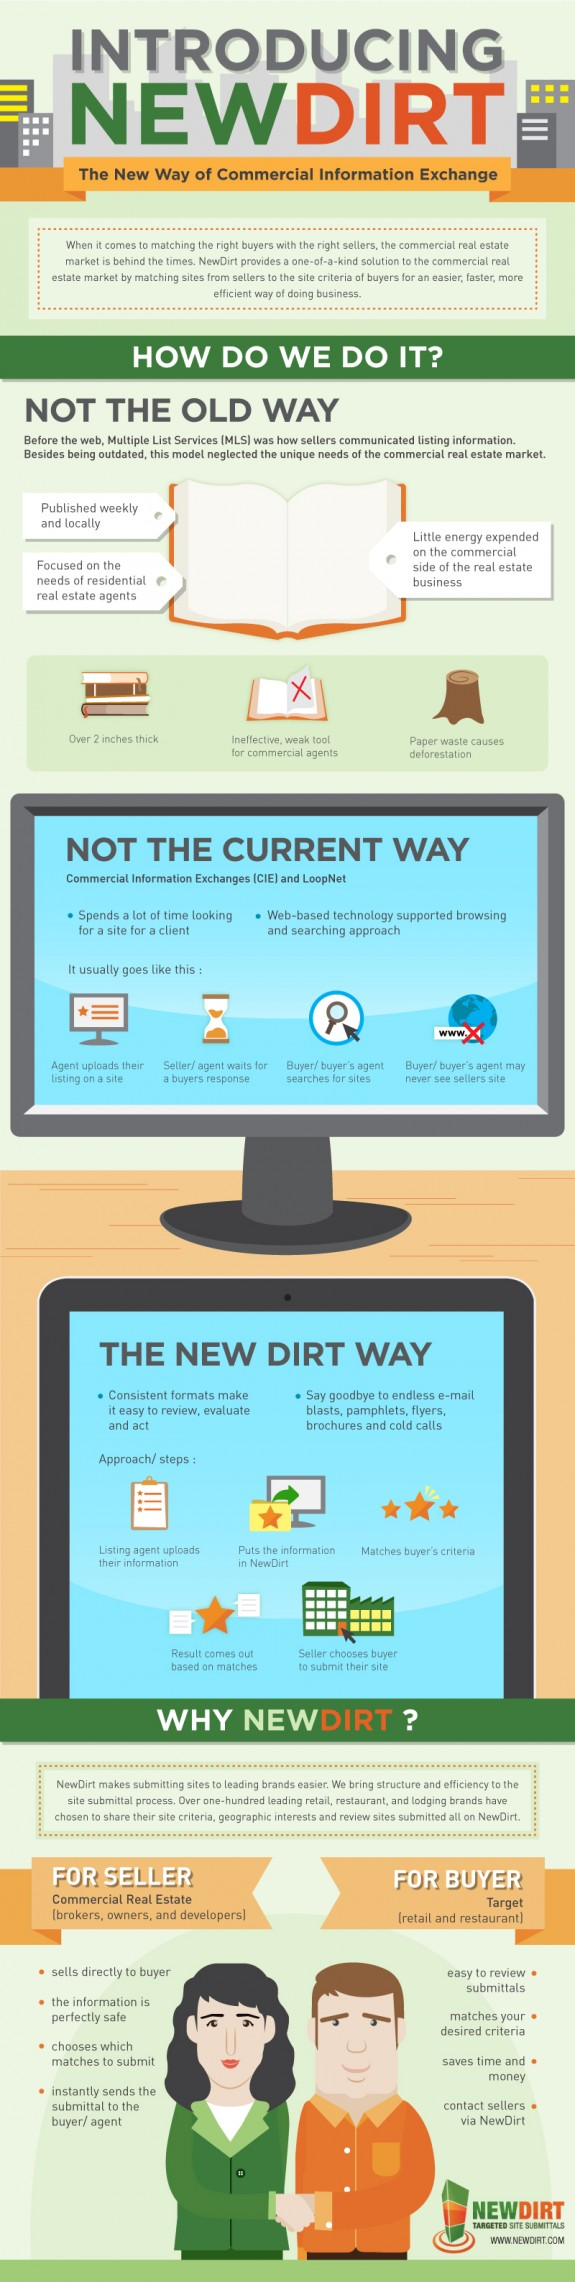 Introducing Newdirt Infographic